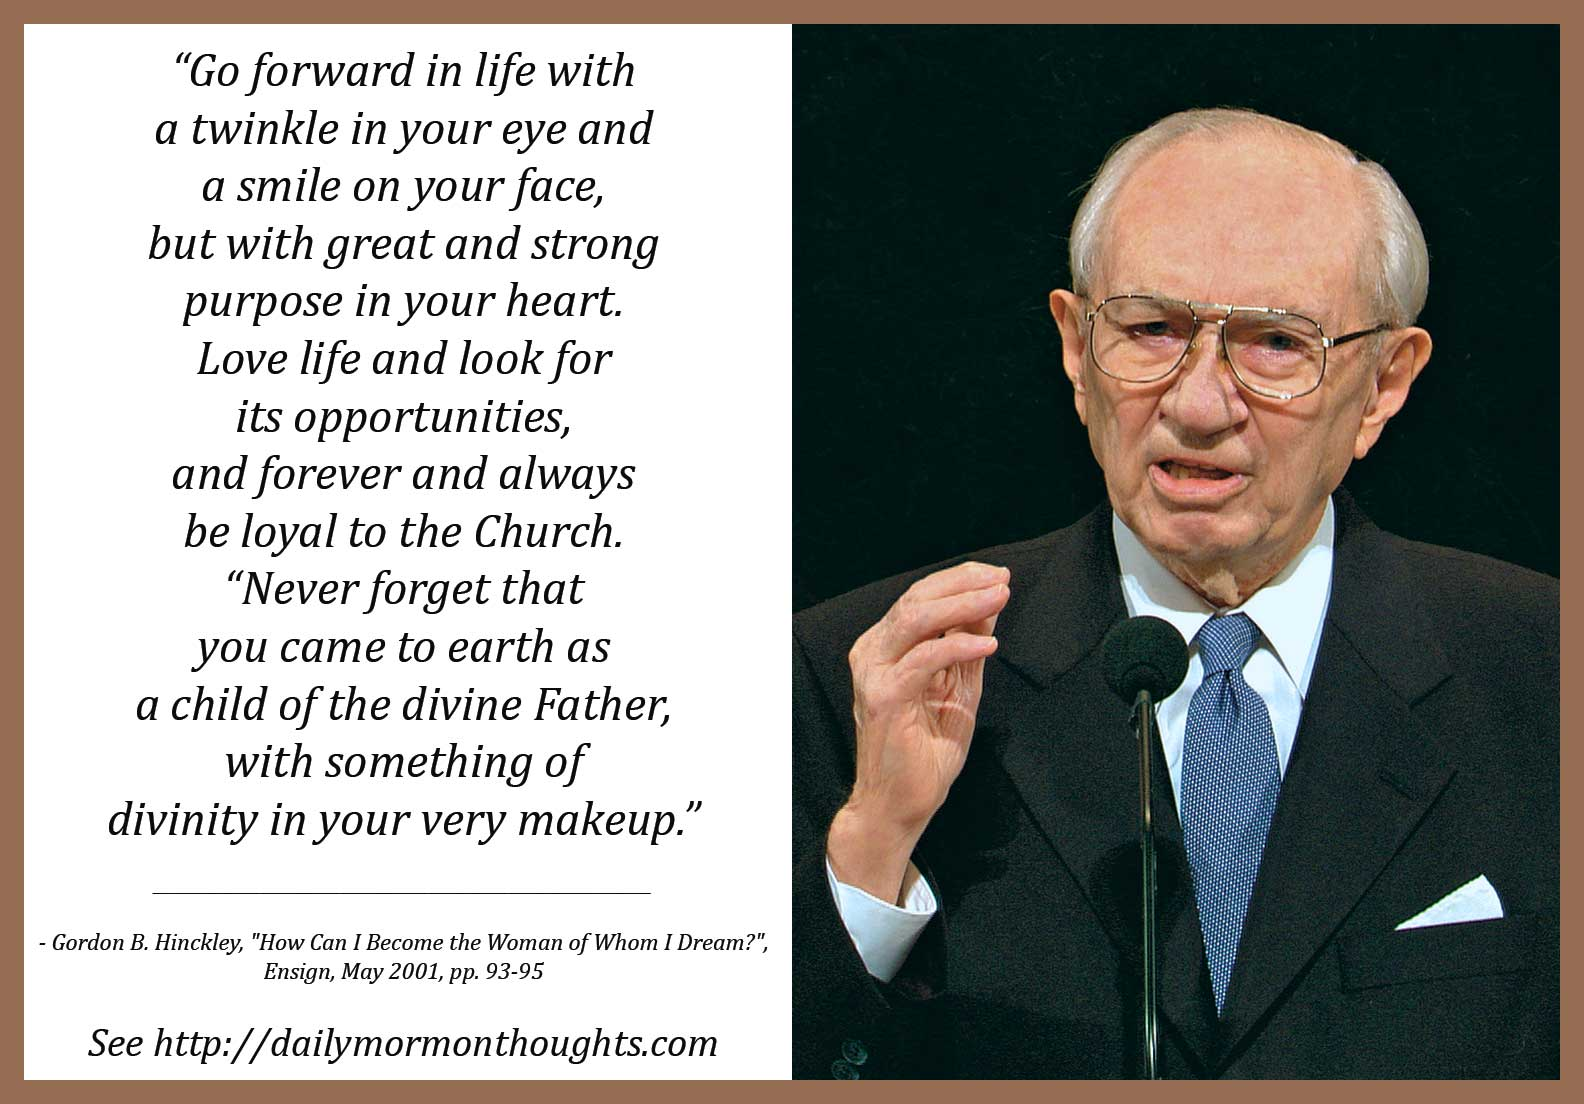 Daily Thought From Modern Prophets Gordon B Hinckley On Loving Life And Reaching Our Divine Potential